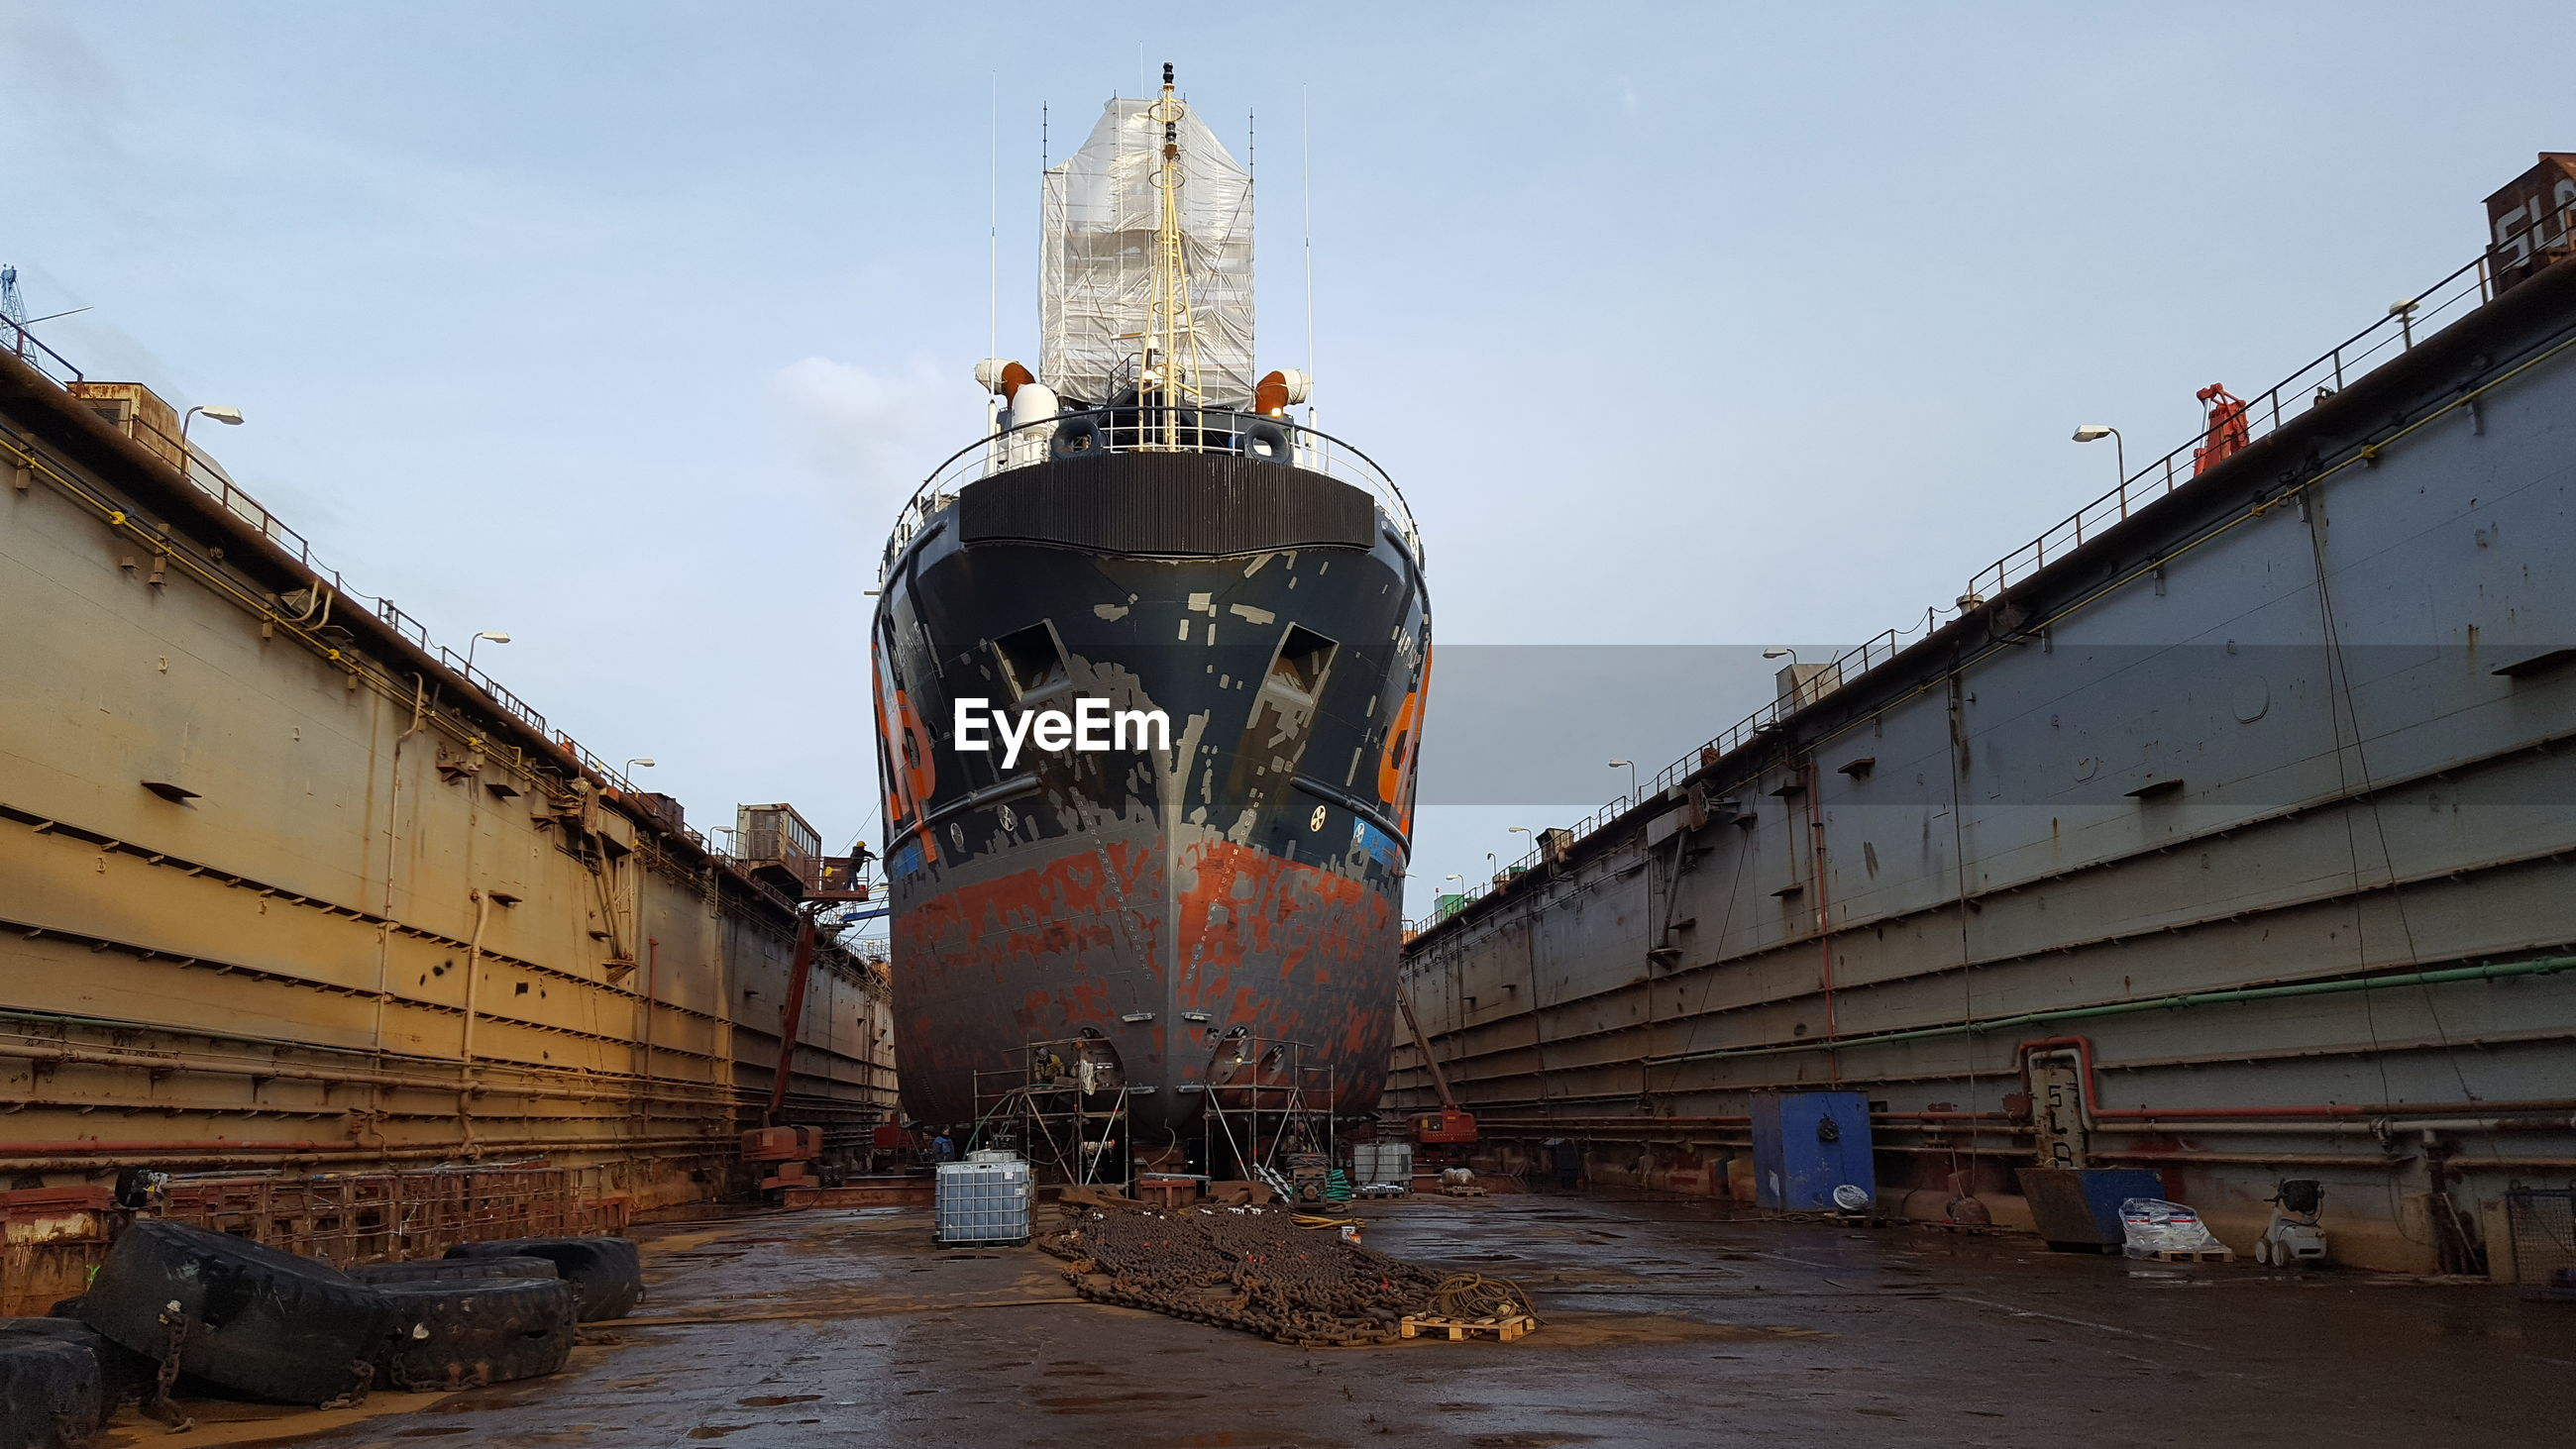 VIEW OF ABANDONED SHIP